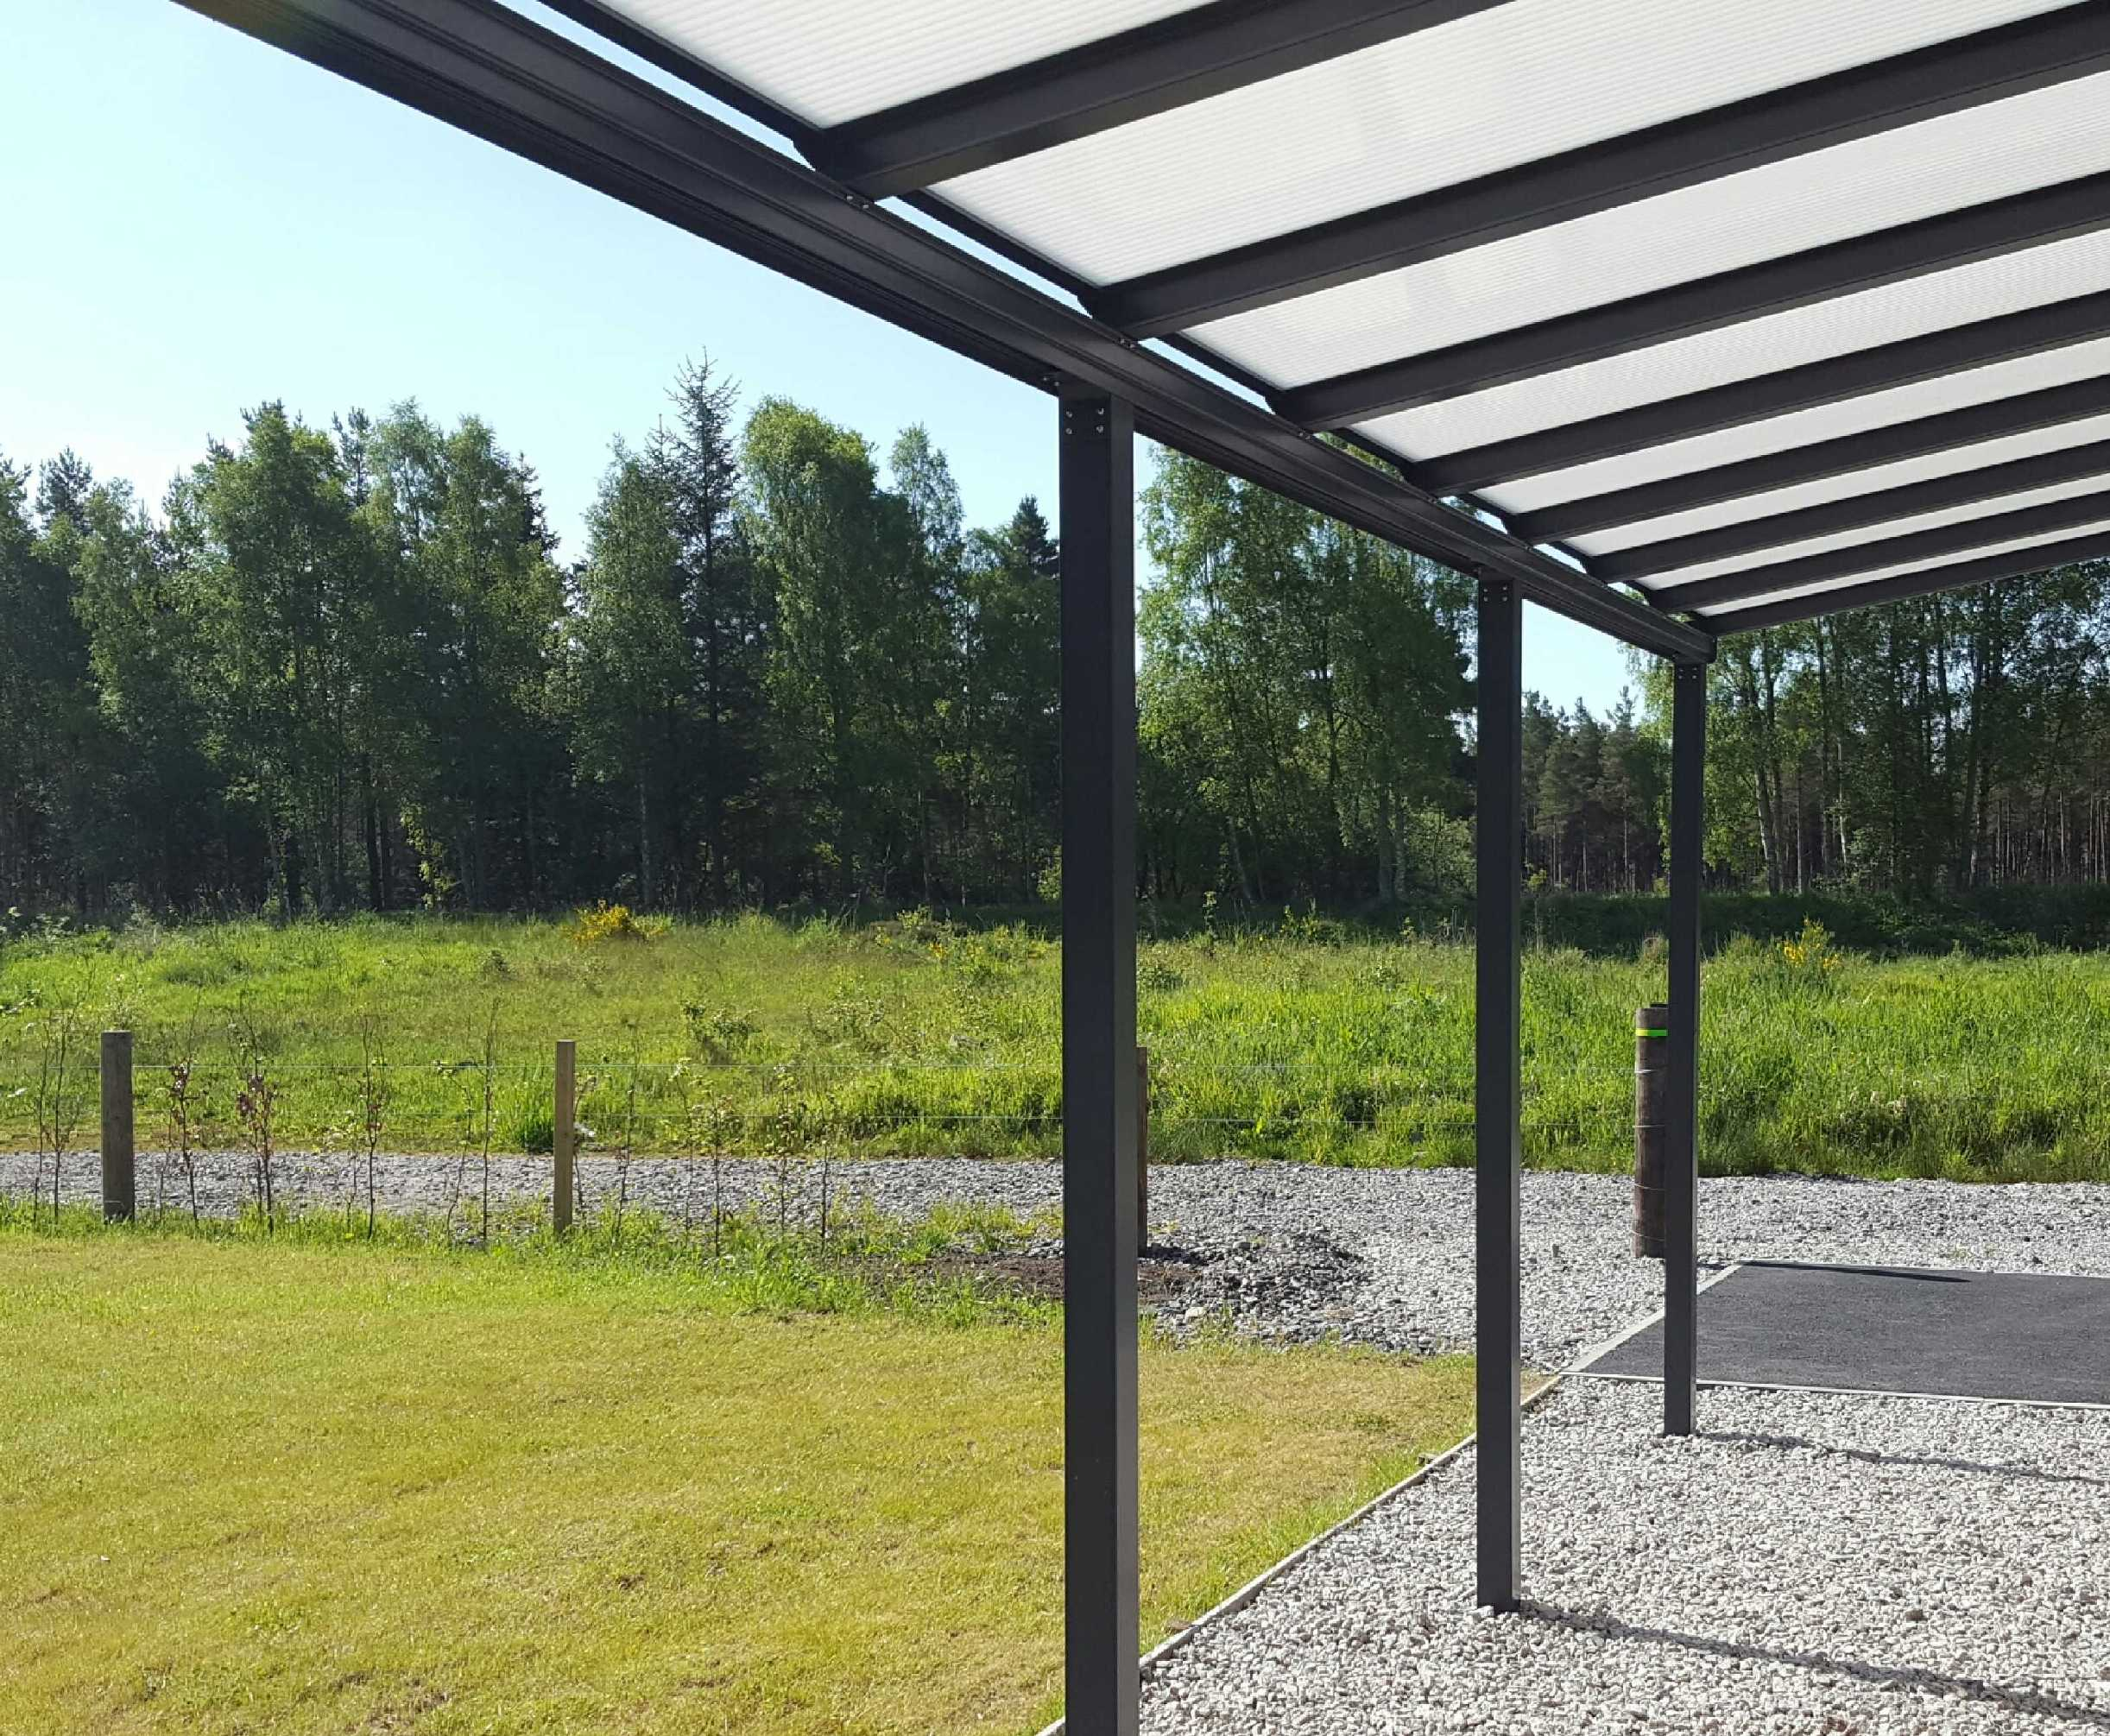 Omega Smart Lean-To Canopy, Anthracite Grey, 16mm Polycarbonate Glazing - 3.5m (W) x 3.5m (P), (3) Supporting Posts